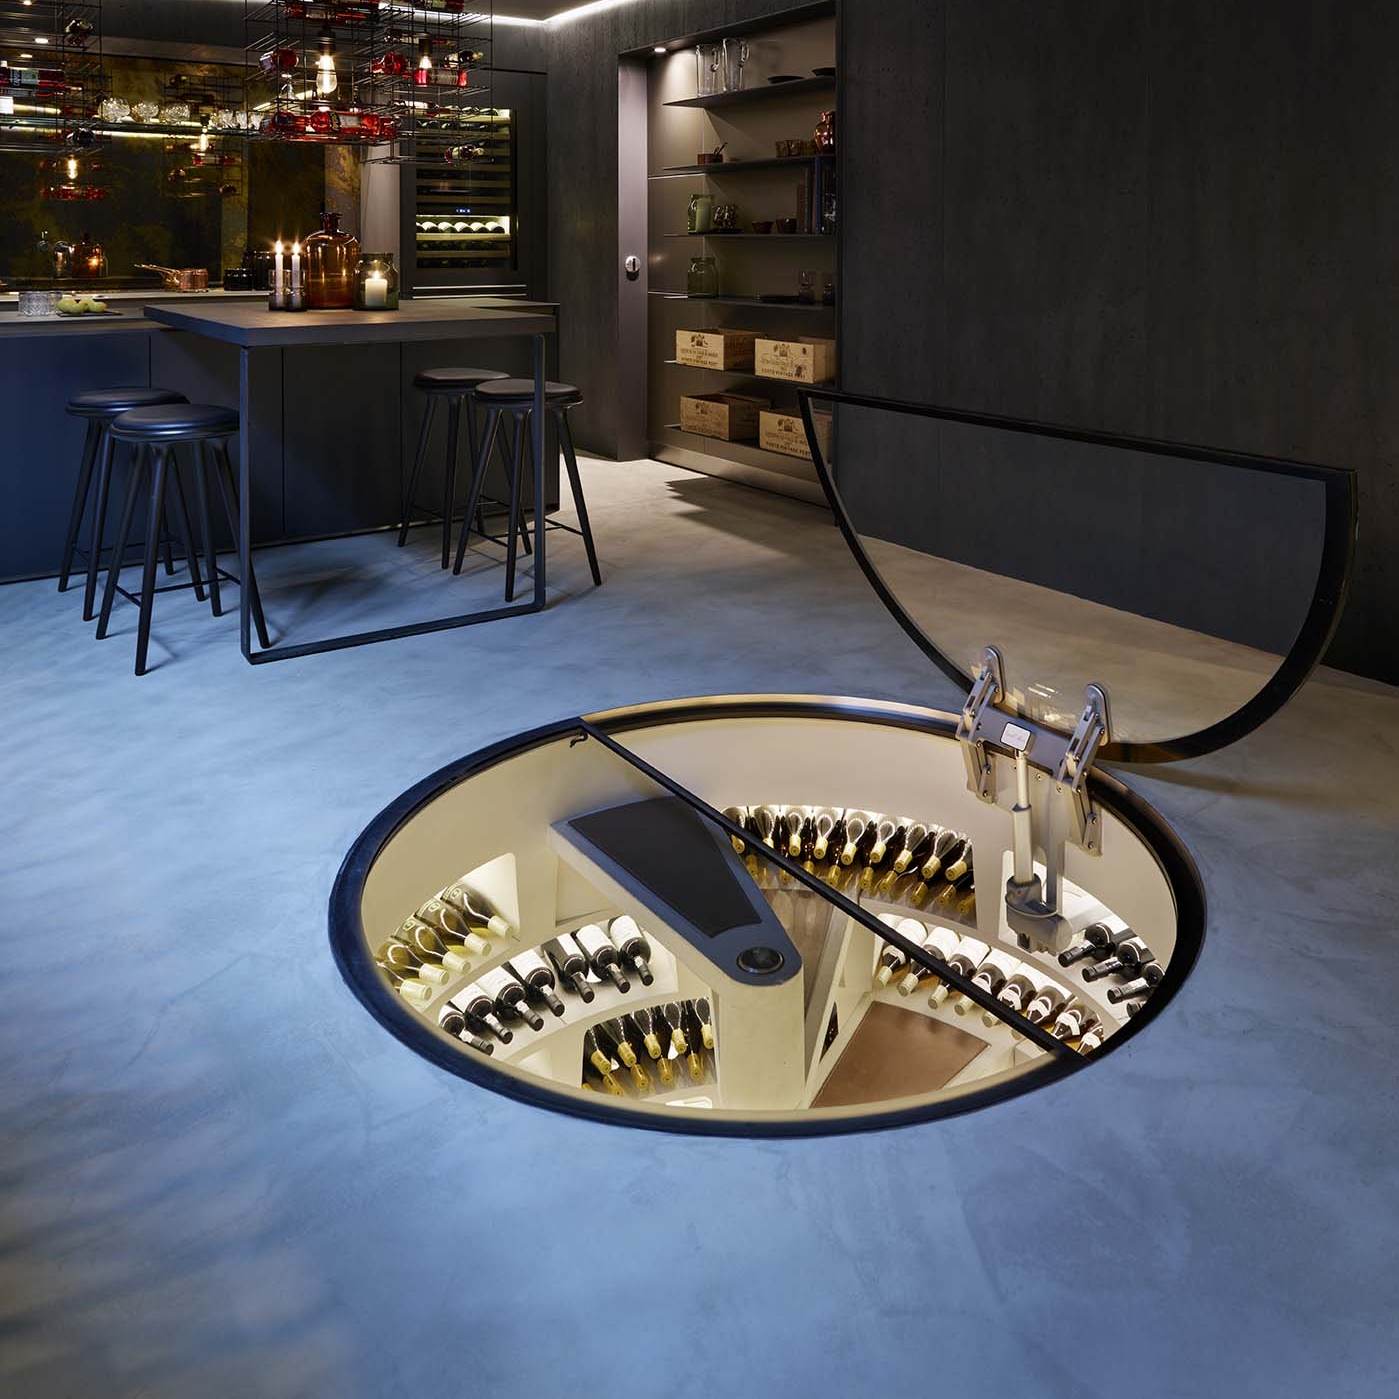 Trapdoor   Unless you choose from our other options, a Spiral Cellar will be installed with our standard timber trap door. You can see an example of the default door by selecting Timber below. However, there are many alternatives to the timber trap door. You can have your trap door concealed to fit the surroundings or choose our personal favourite; a glass trap door allowing you and your guests to admire your wine collection from above.